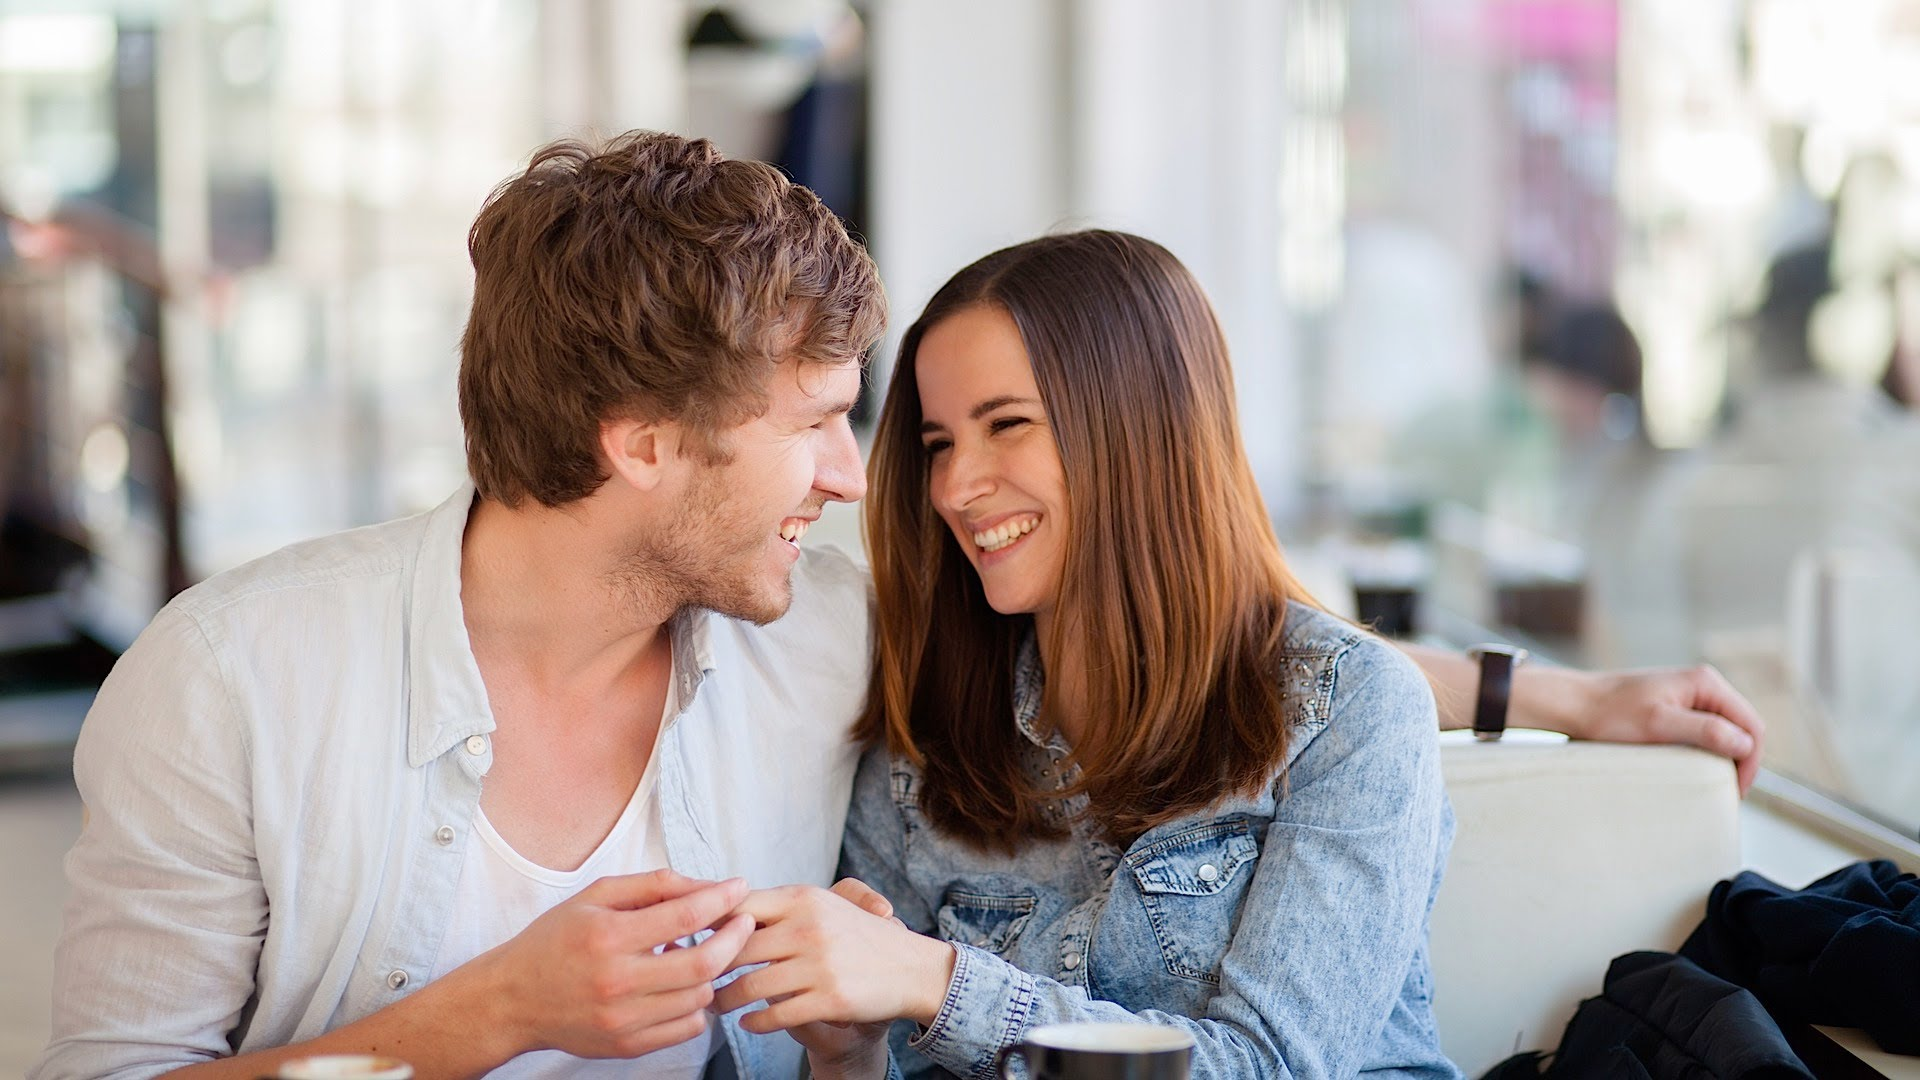 How to move from fear to a positive dating mindset